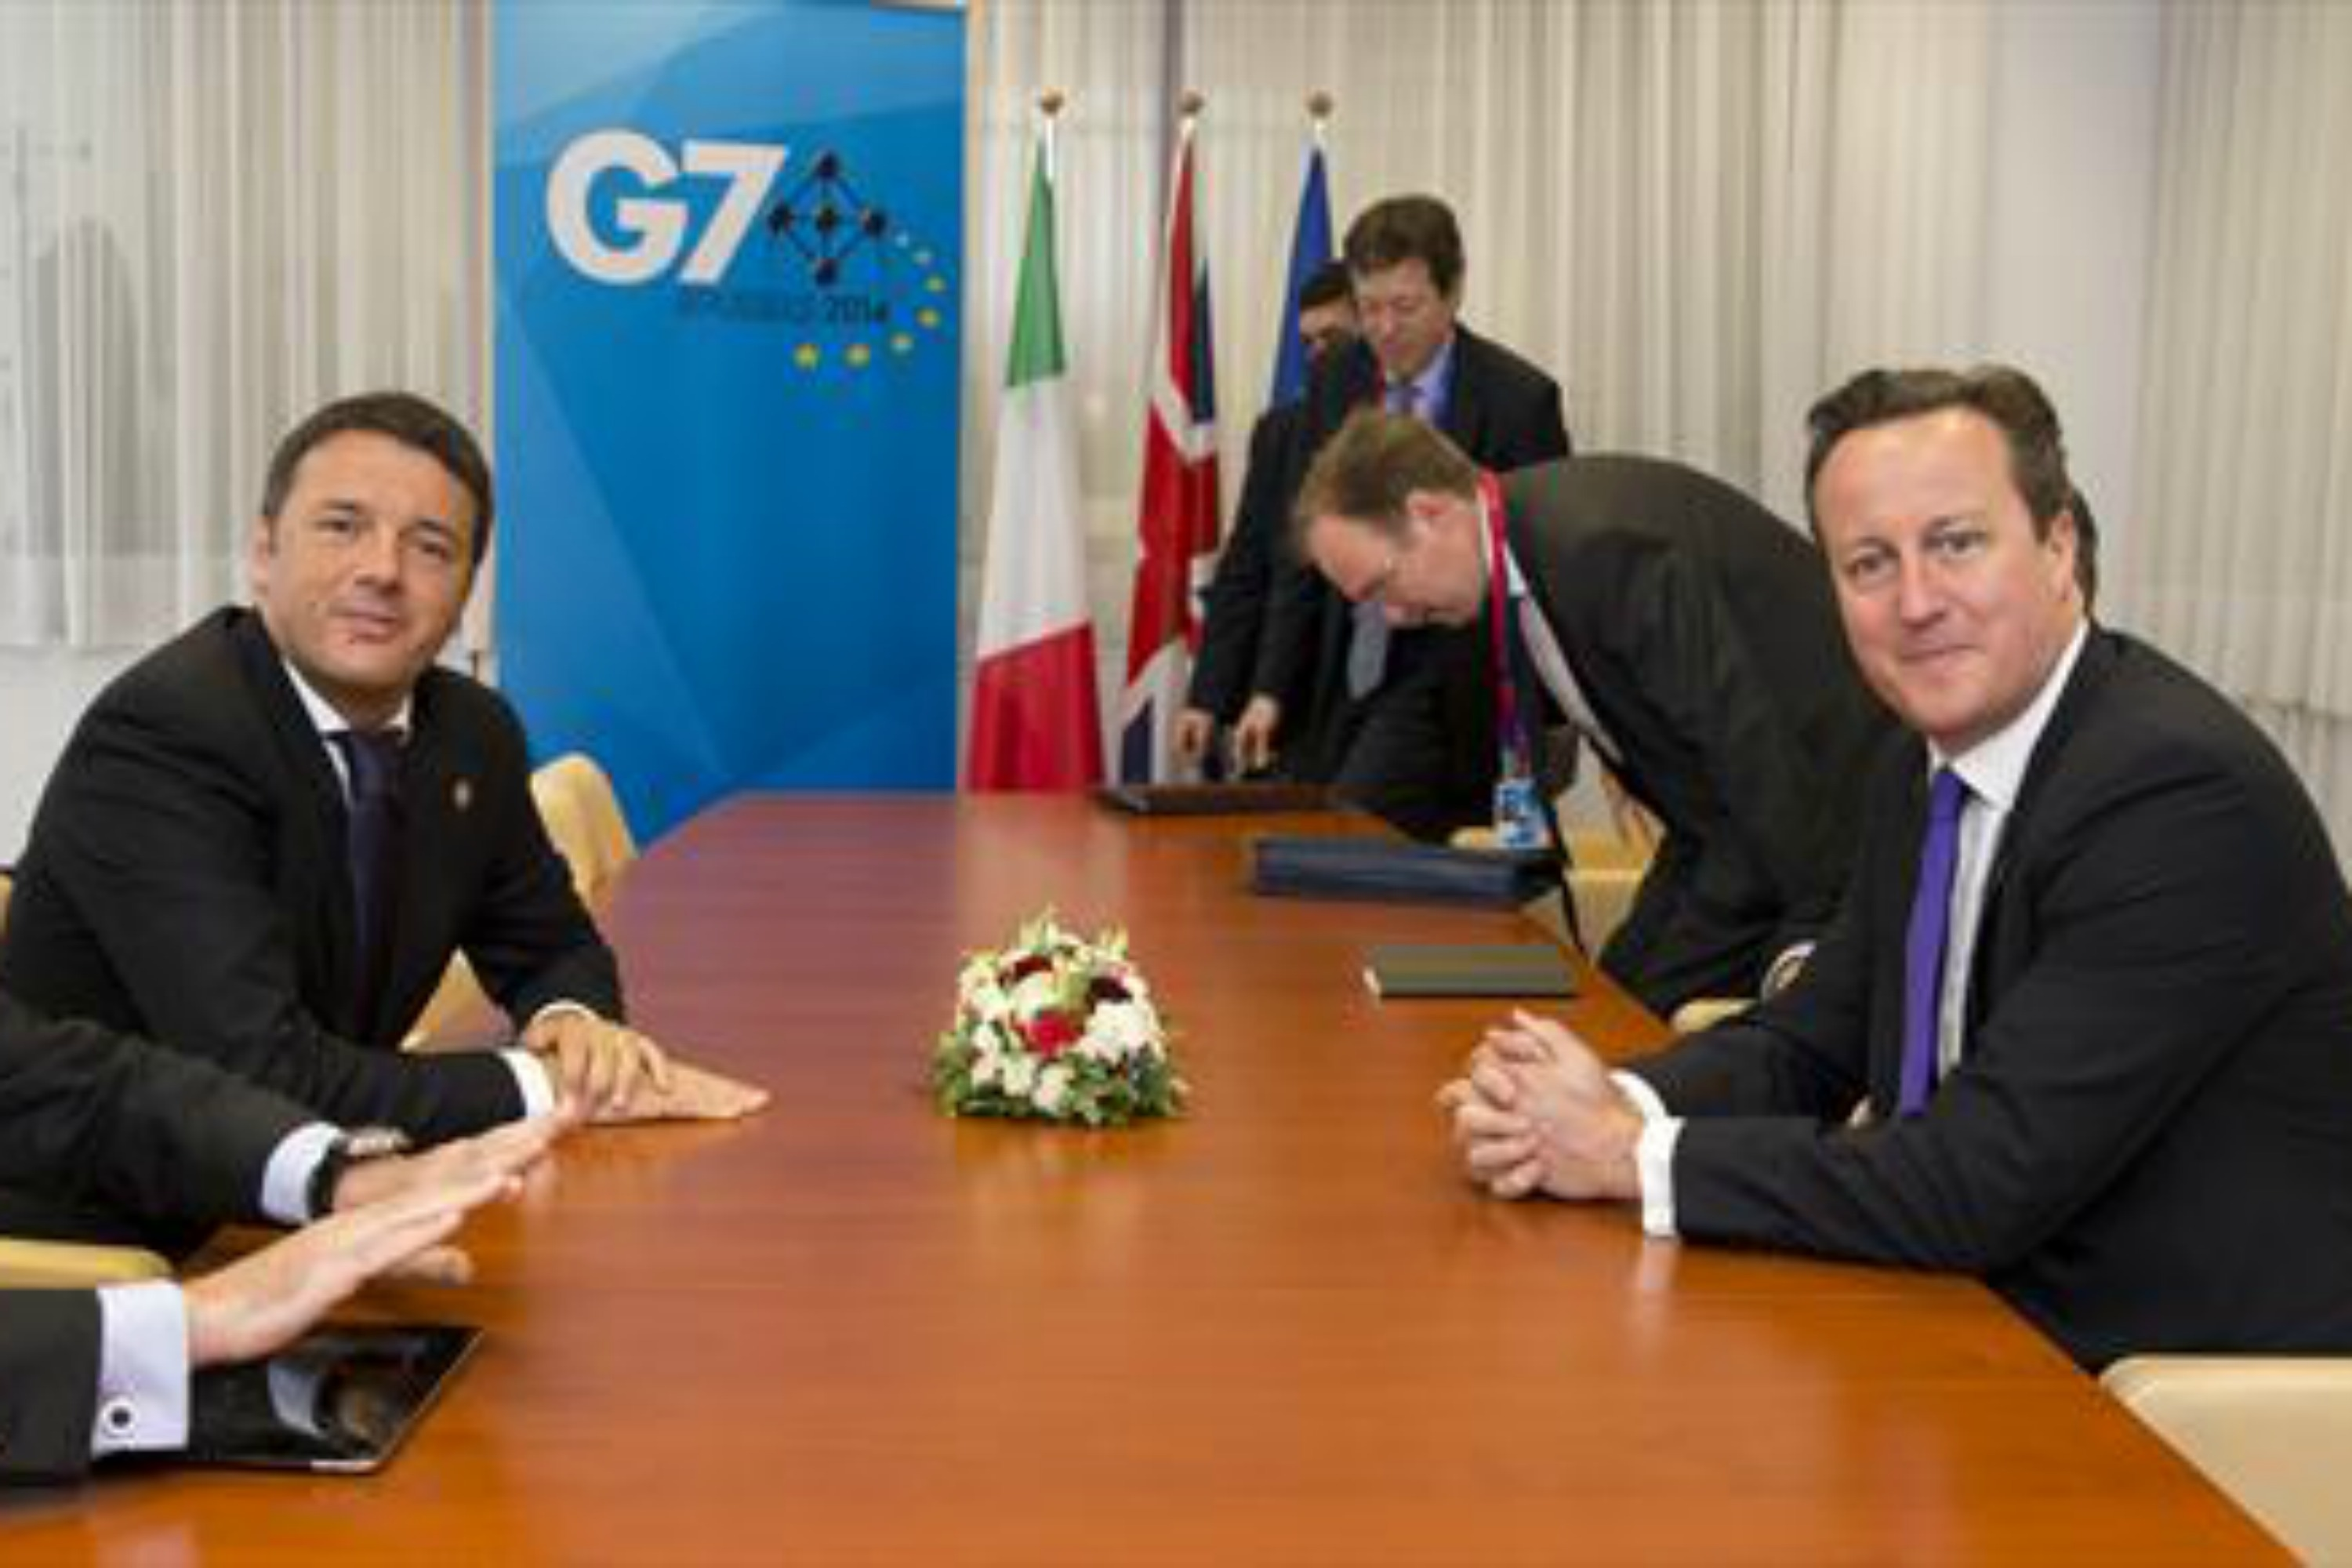 Matteo Renzi and David Cameron hold a bilateral meeting during G7 summit